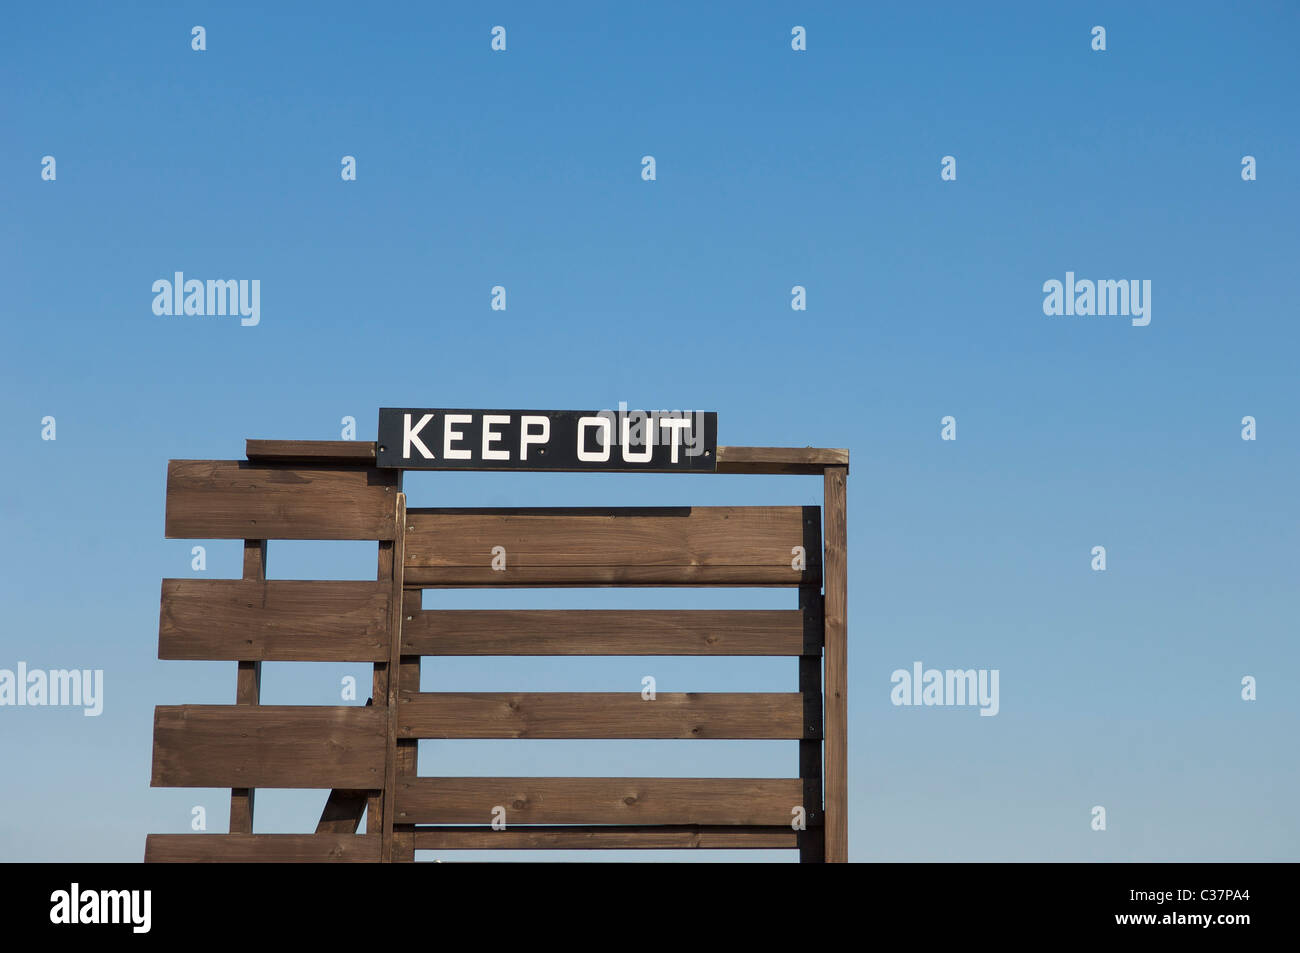 Keep out sign against sky - Stock Image